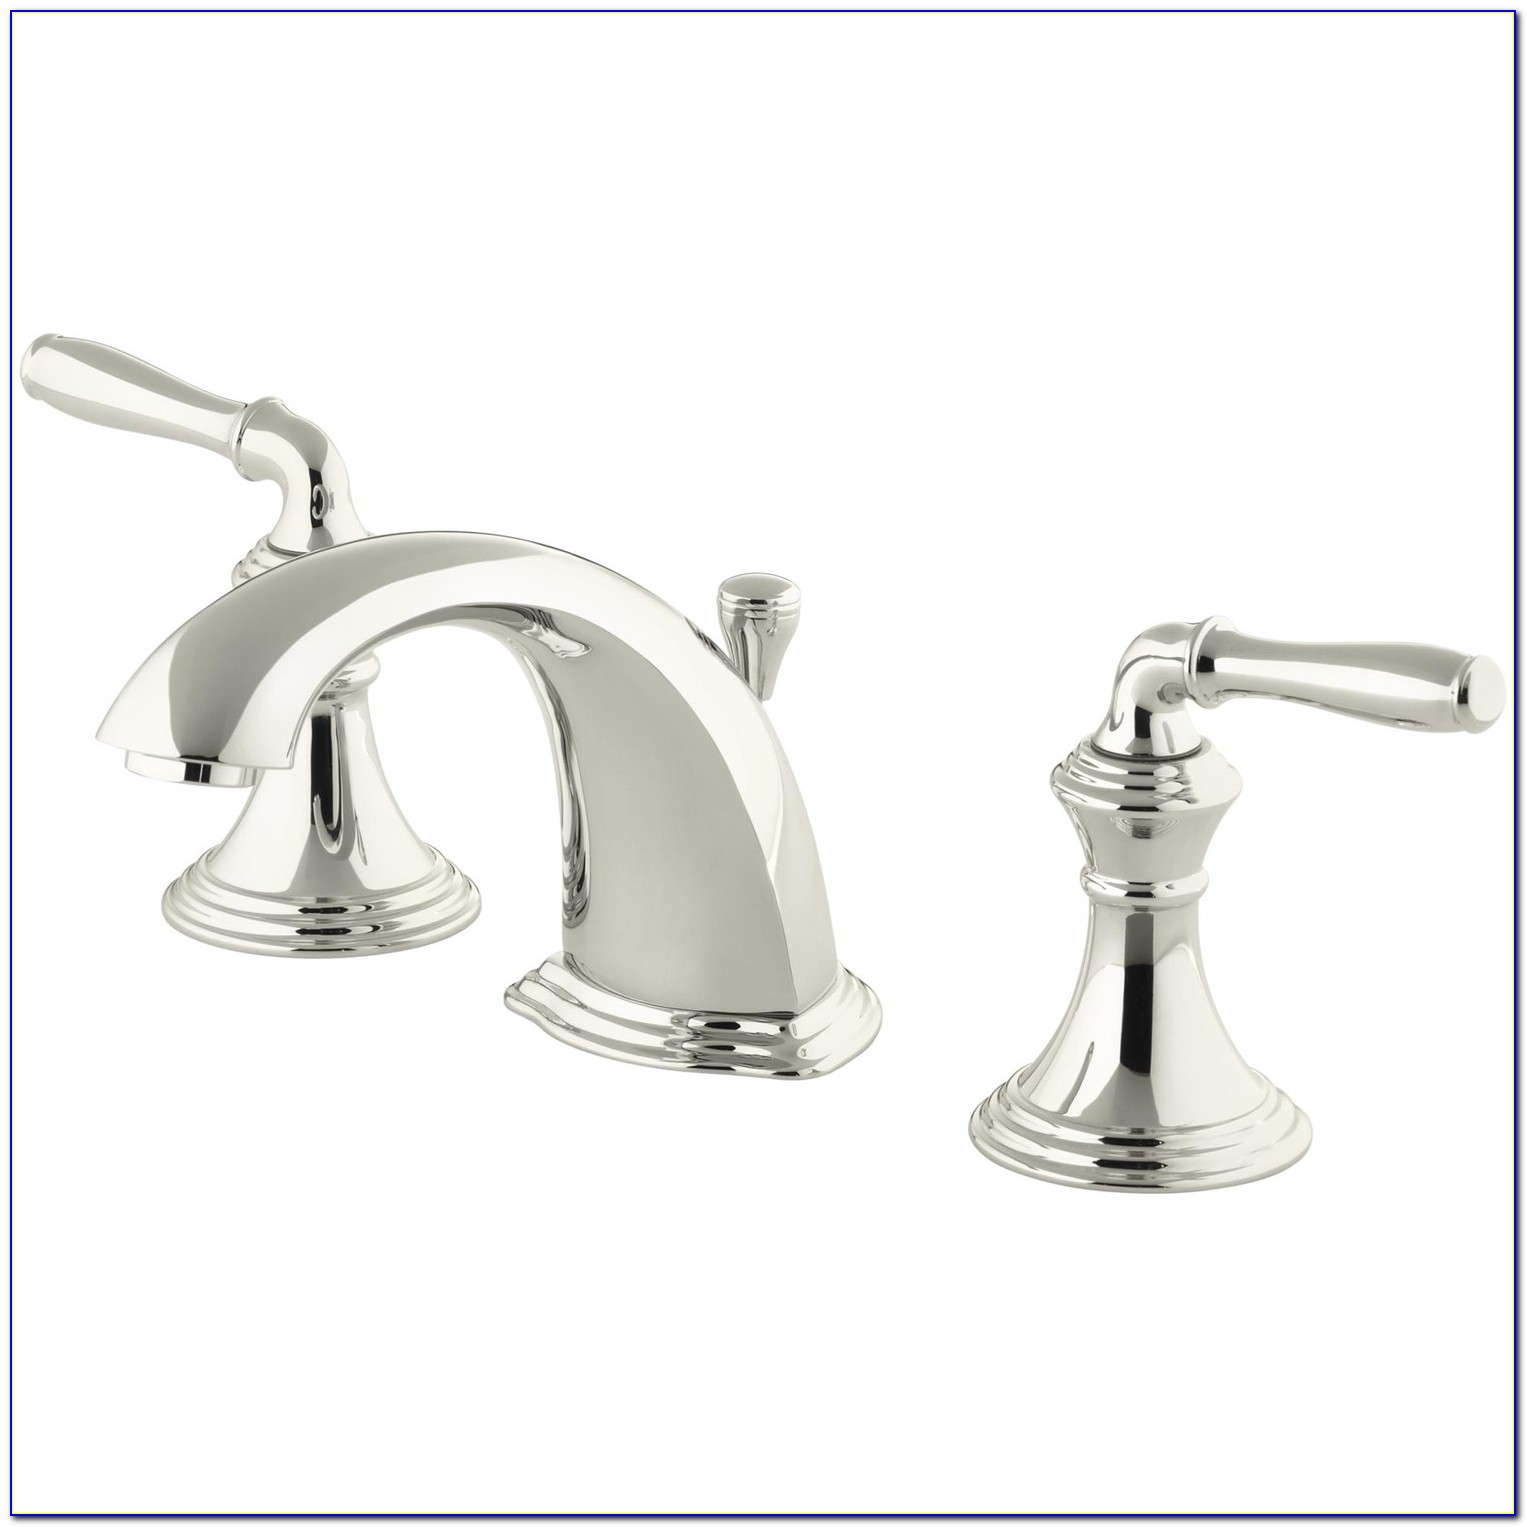 Kohler Widespread Bathroom Sink Faucet